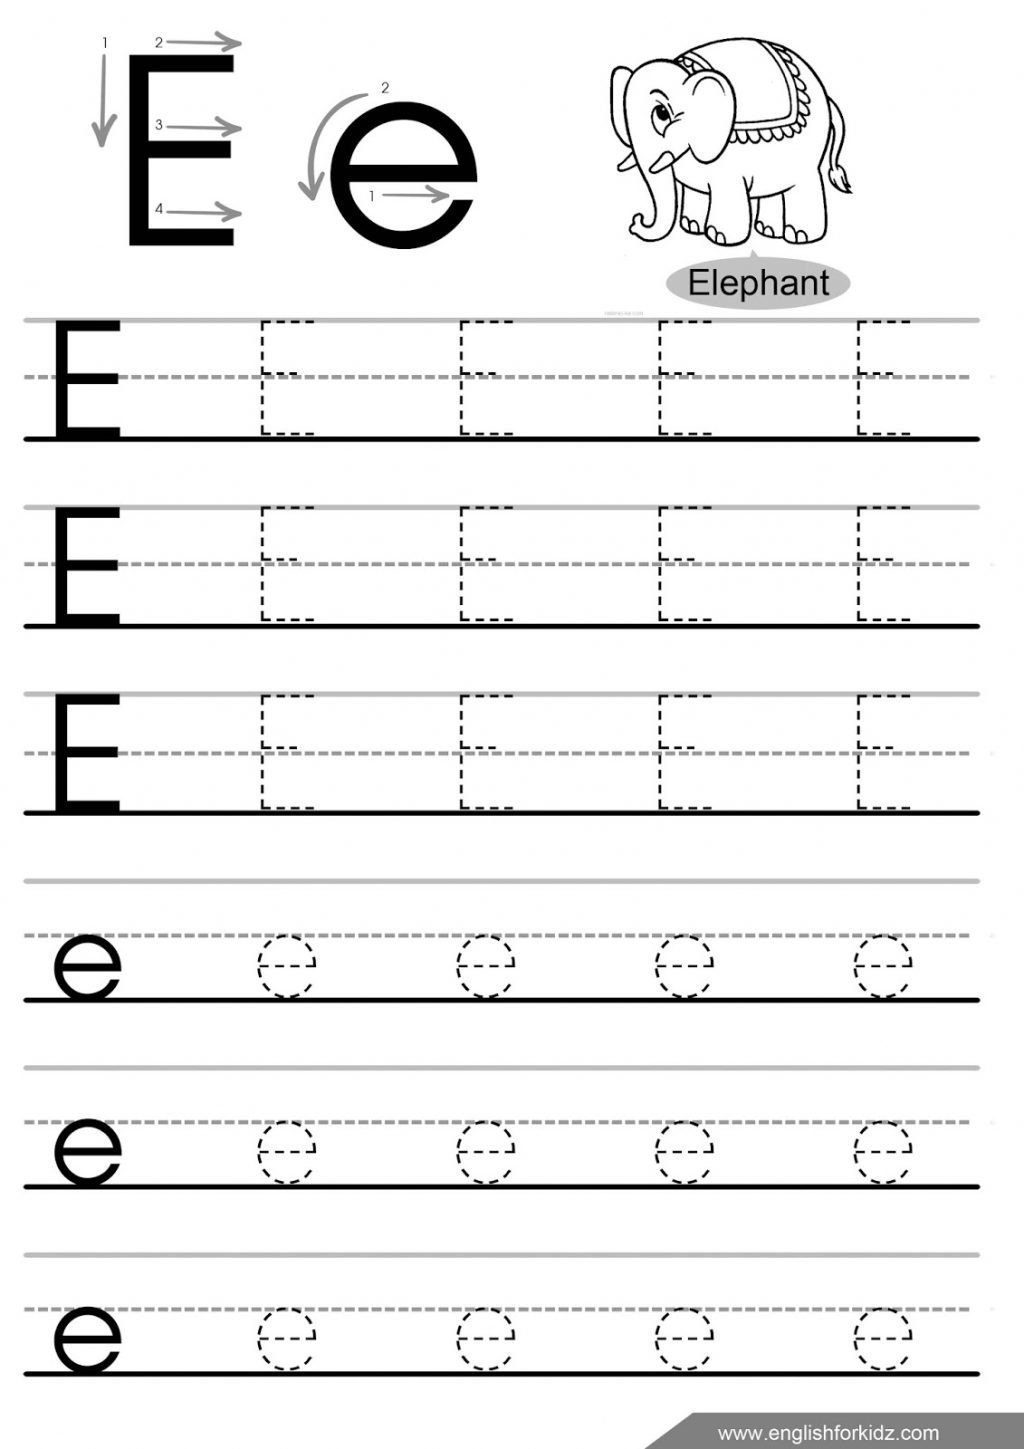 Magic E Worksheets Free 32 Fun Letter E Worksheets